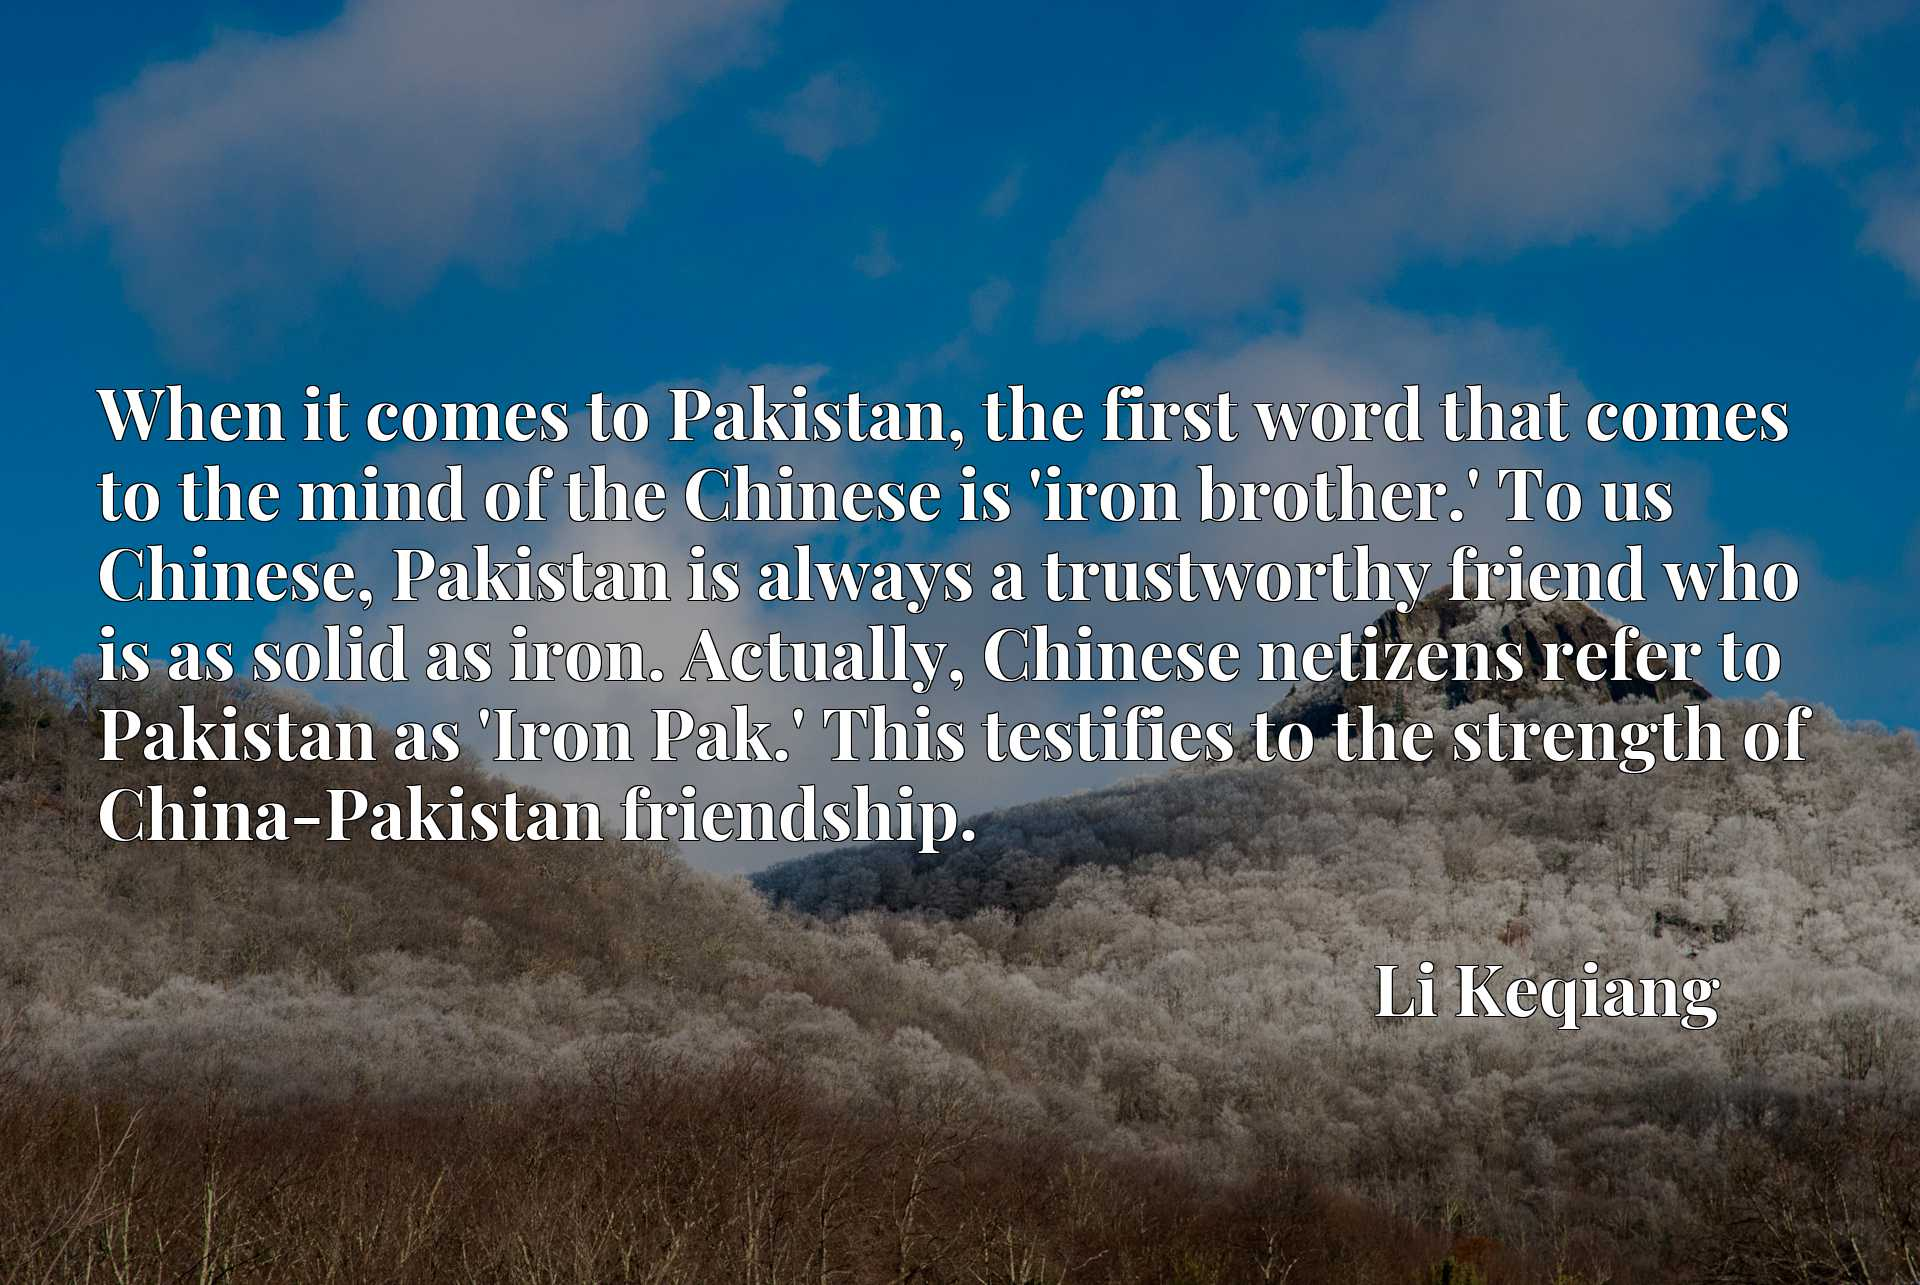 When it comes to Pakistan, the first word that comes to the mind of the Chinese is 'iron brother.' To us Chinese, Pakistan is always a trustworthy friend who is as solid as iron. Actually, Chinese netizens refer to Pakistan as 'Iron Pak.' This testifies to the strength of China-Pakistan friendship.